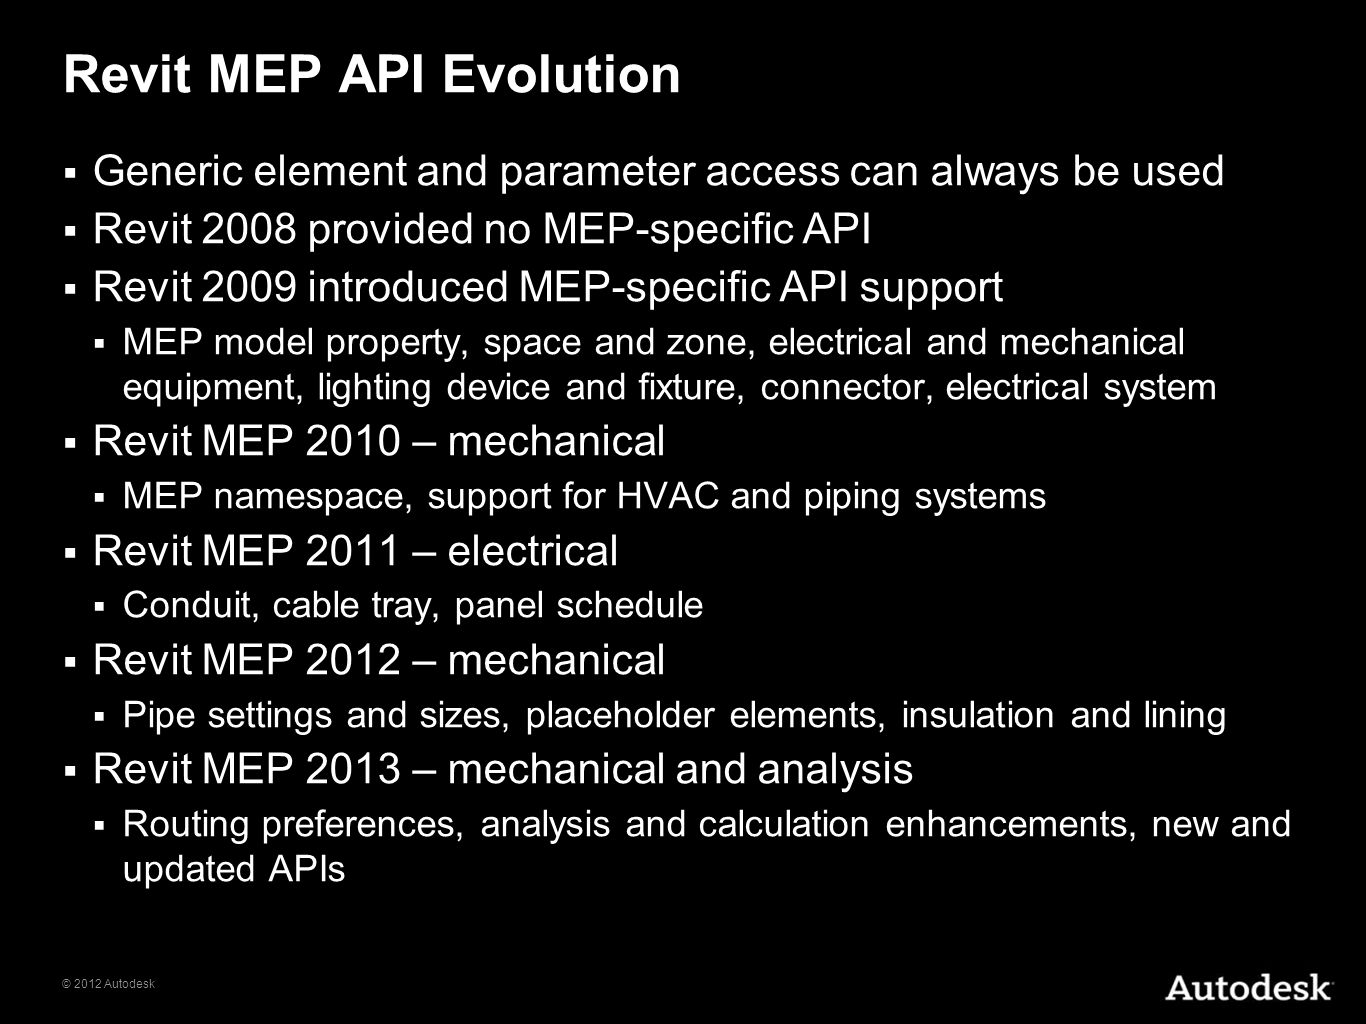 Revit MEP API Evolution